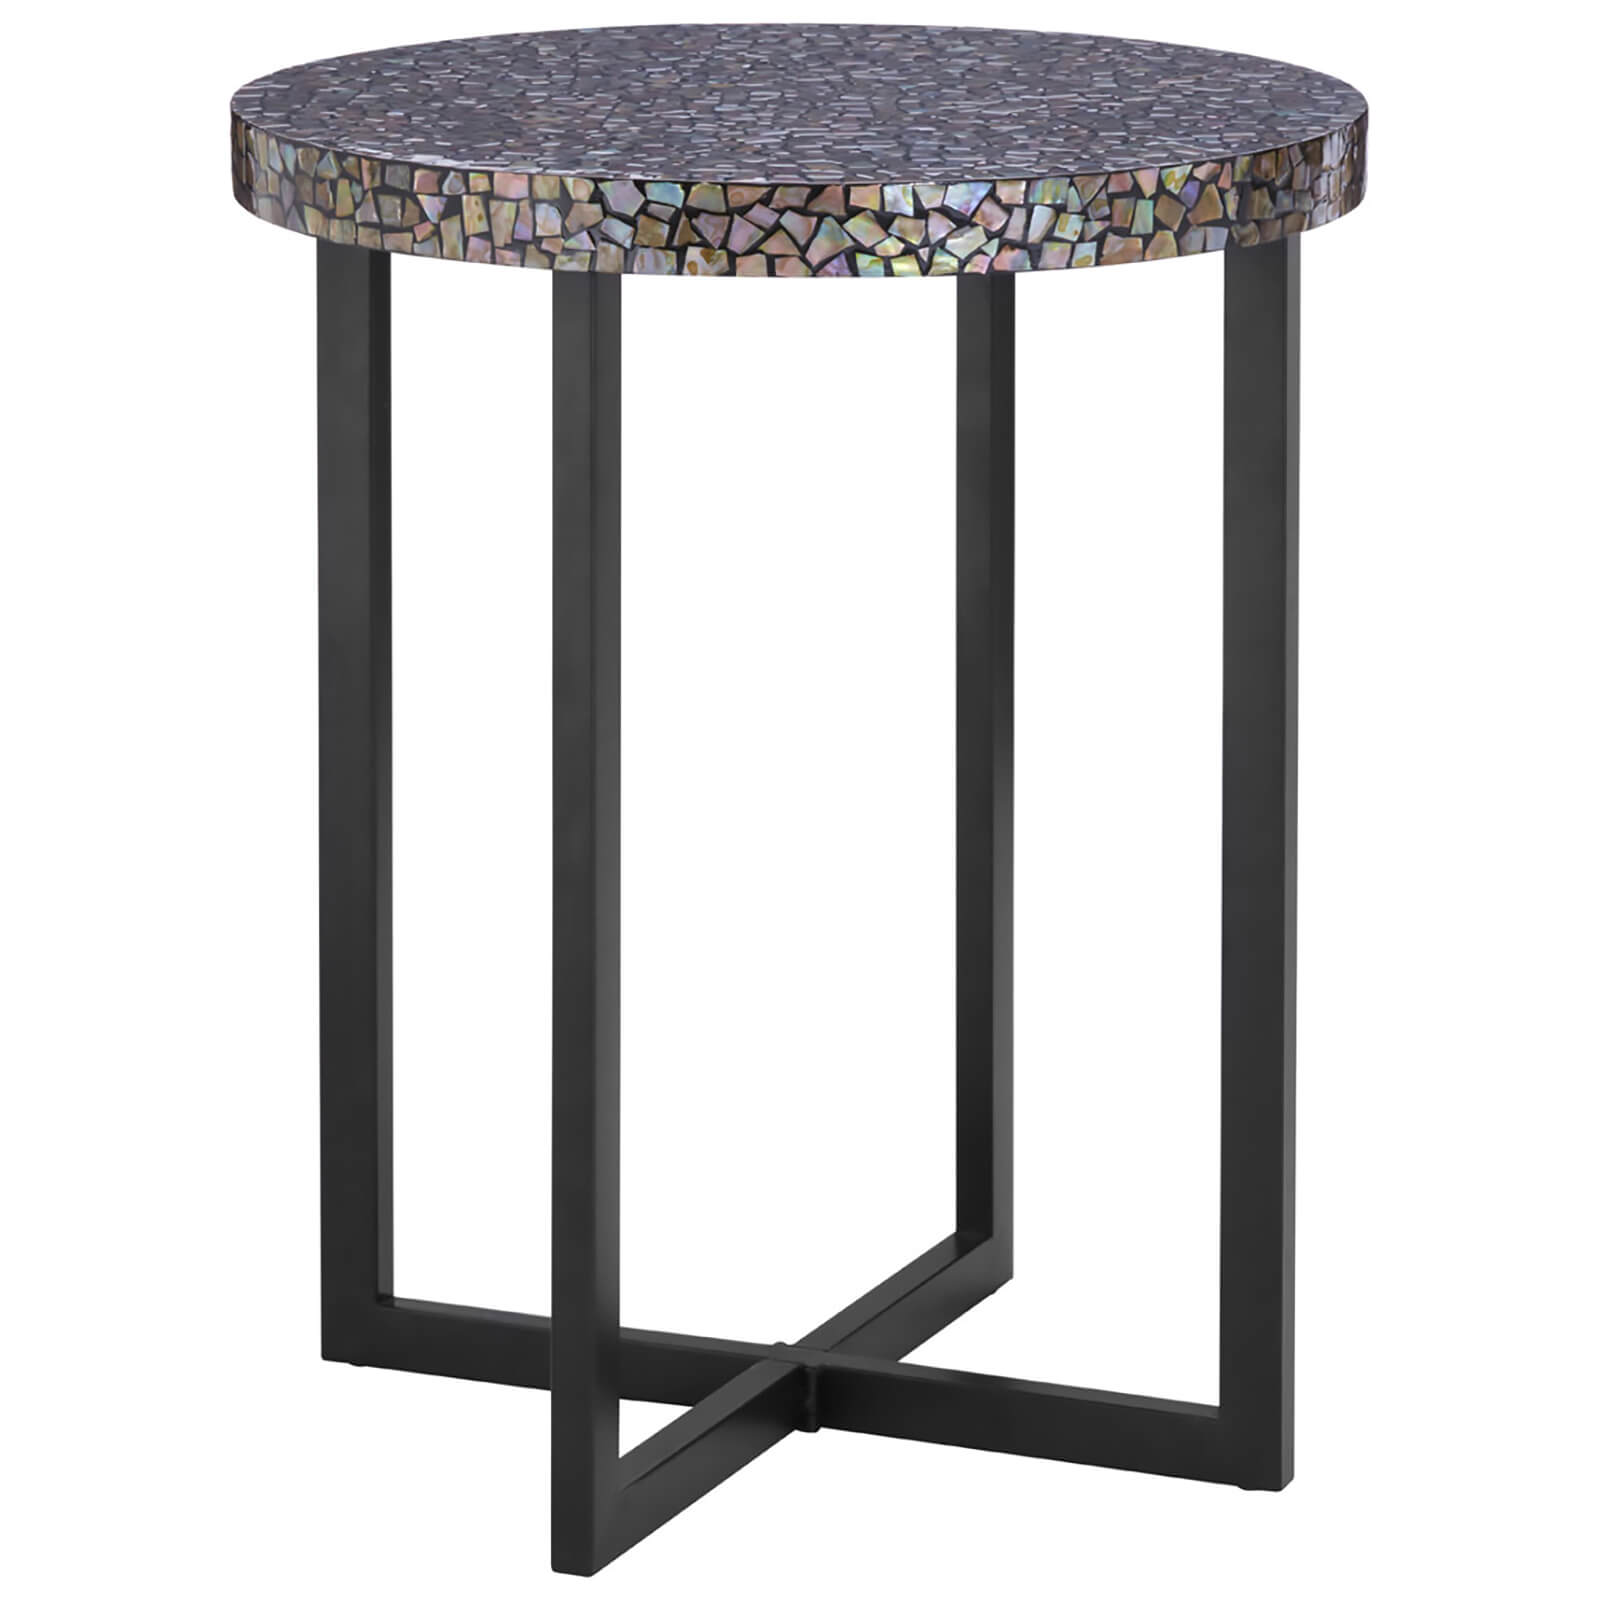 Fifty Five South Fusion Round Side Table - Crackle Mosaic